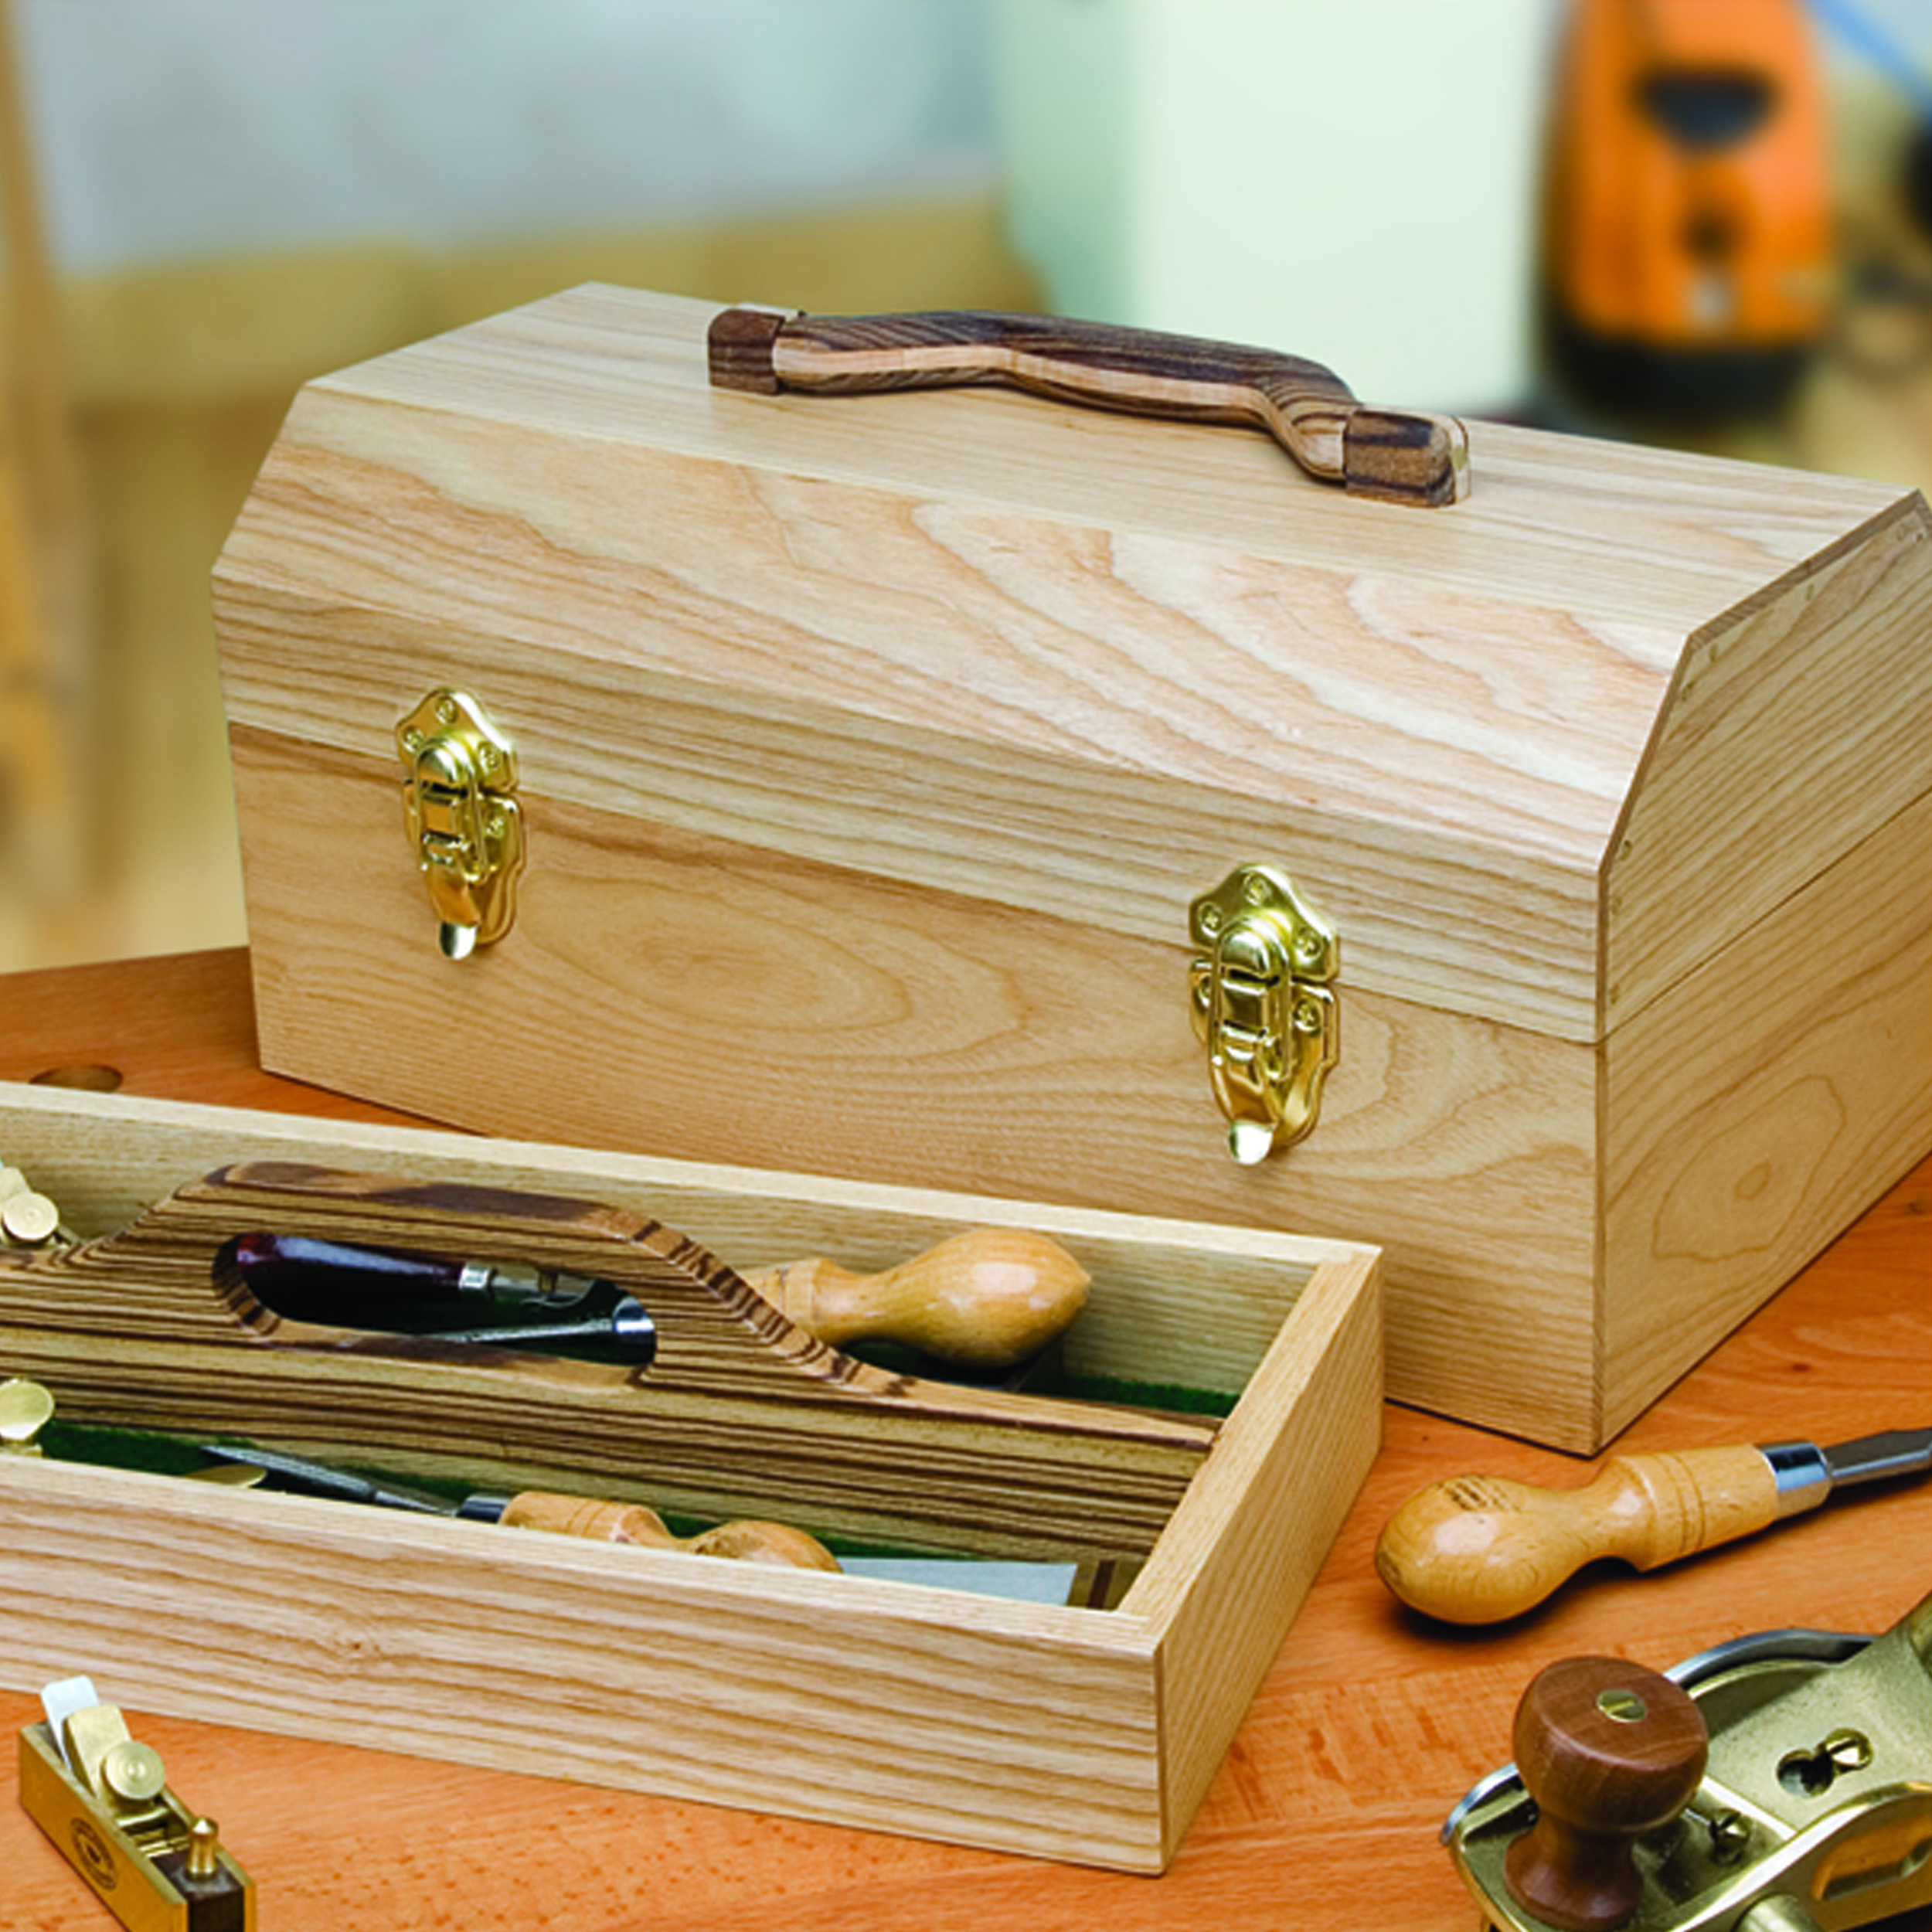 Woodworking Project Paper Plan to Build Craftsman's Toolbox